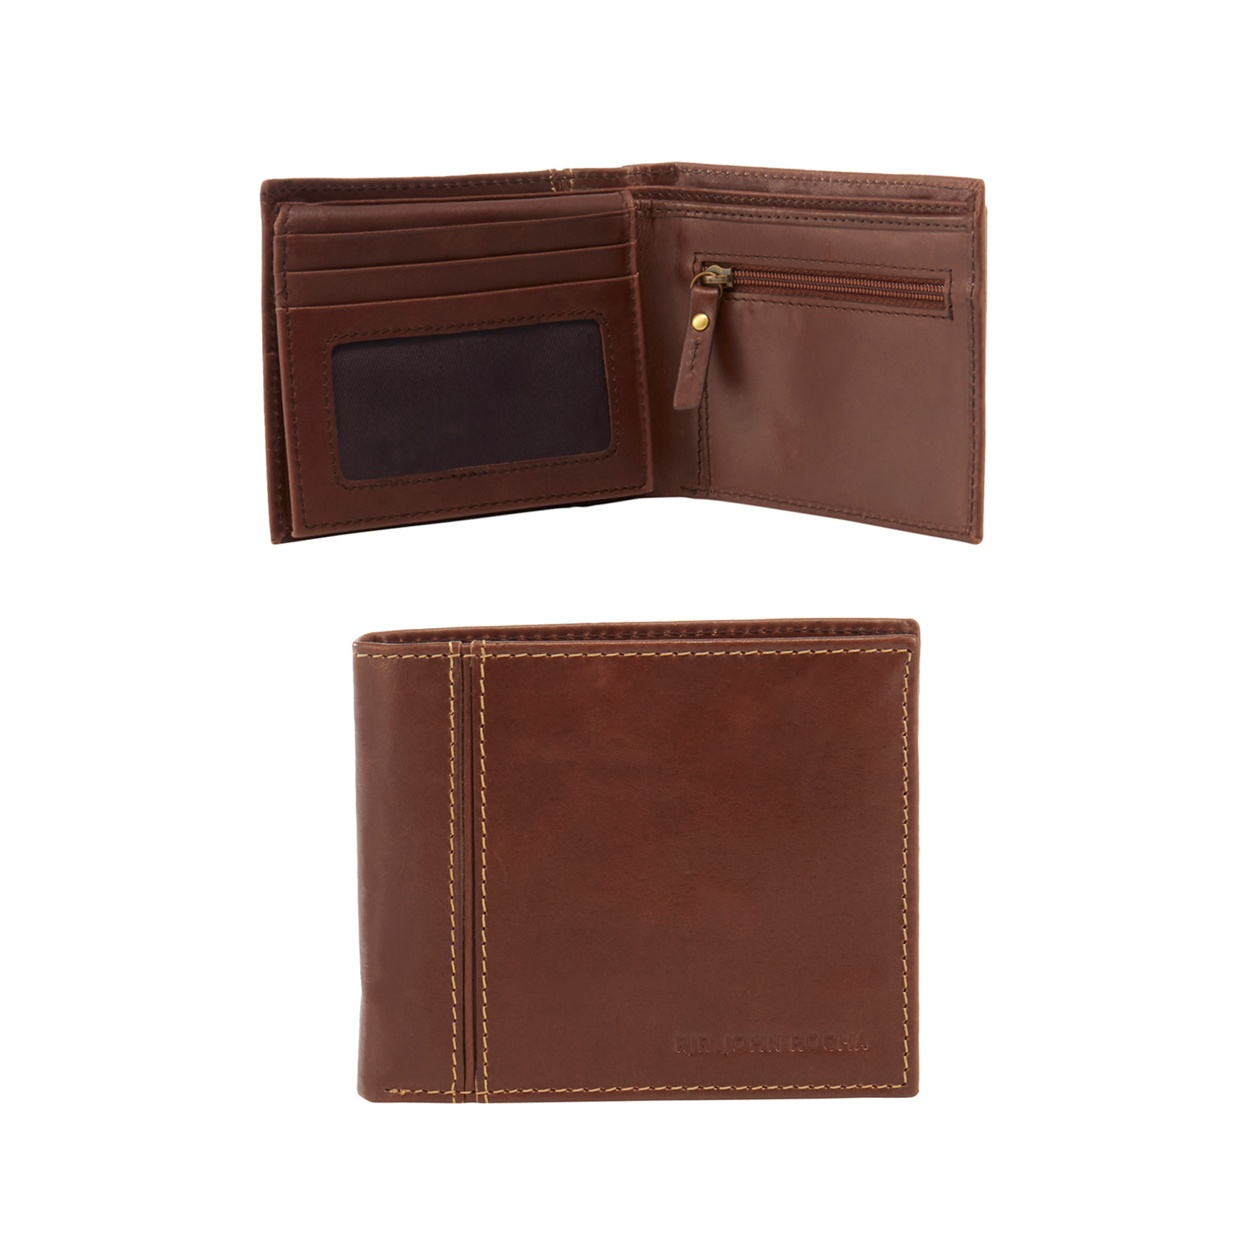 Mens leather gloves at debenhams - John Rocha Brown Leather Wallet In A Gift Box